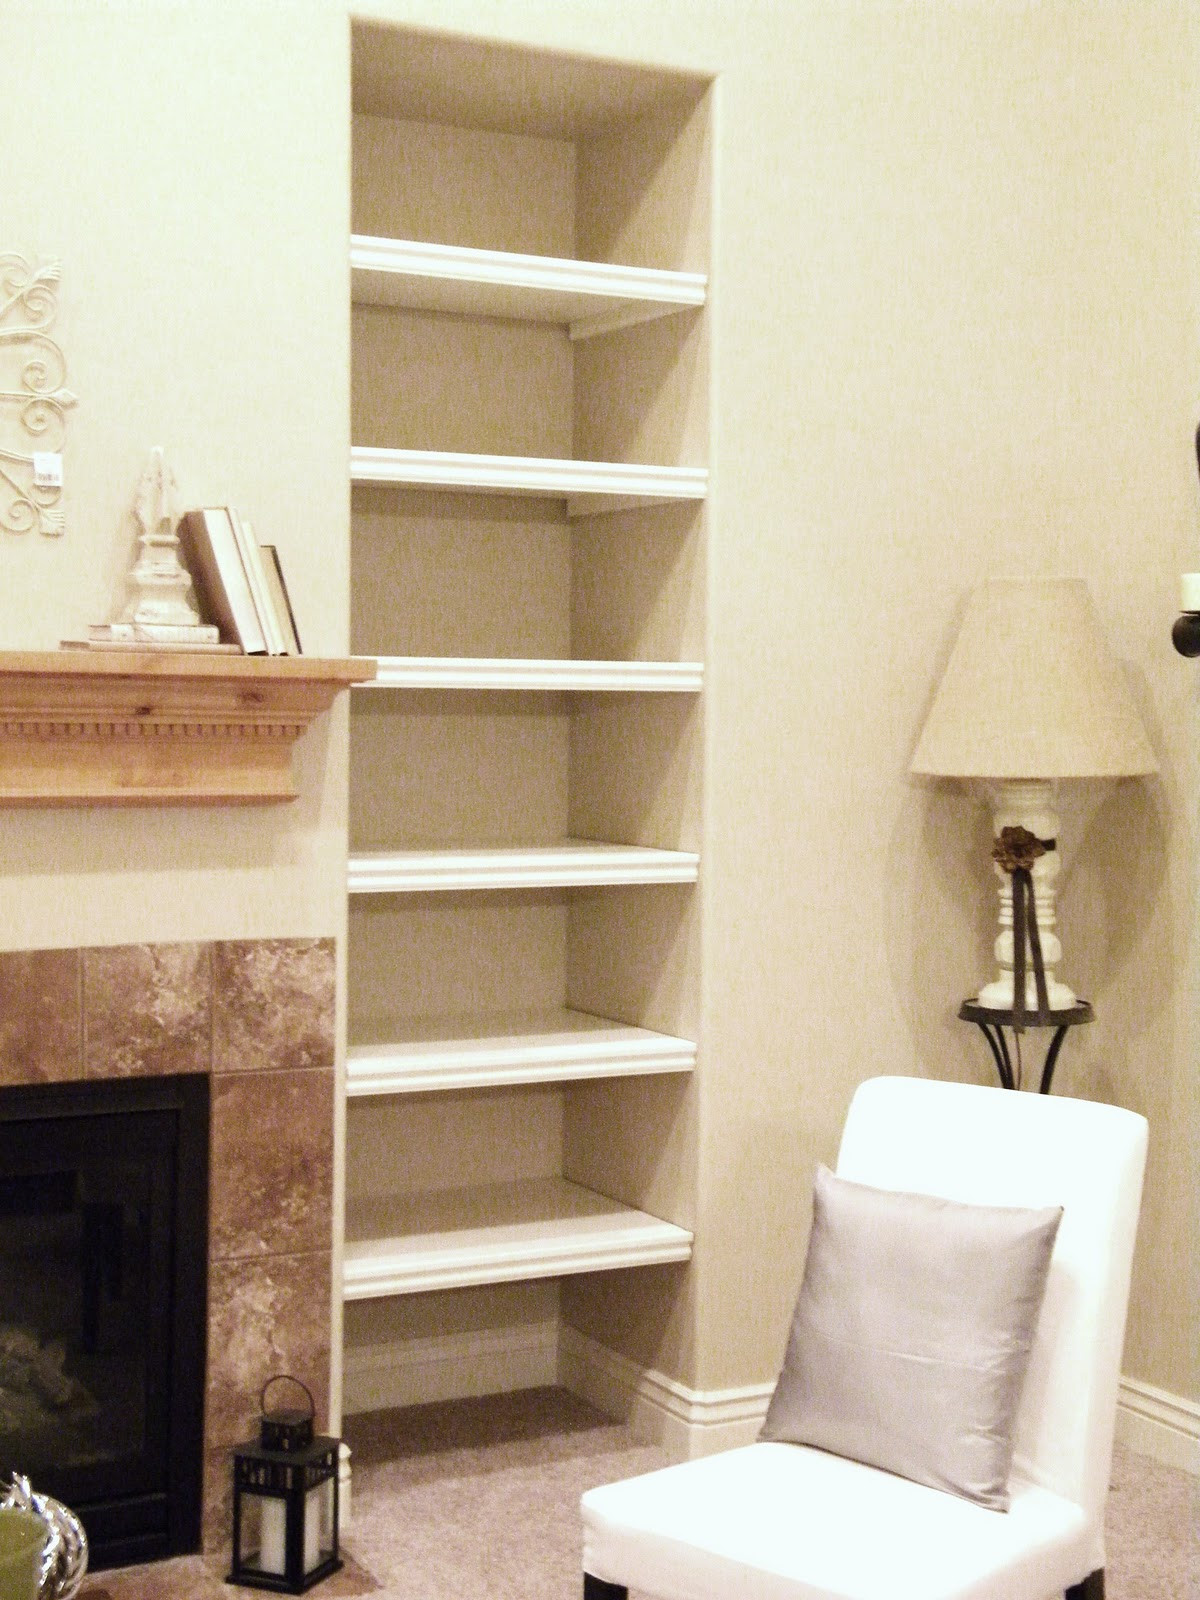 Best ideas about DIY Built Ins . Save or Pin Thrifty and Chic DIY Projects and Home Decor Now.